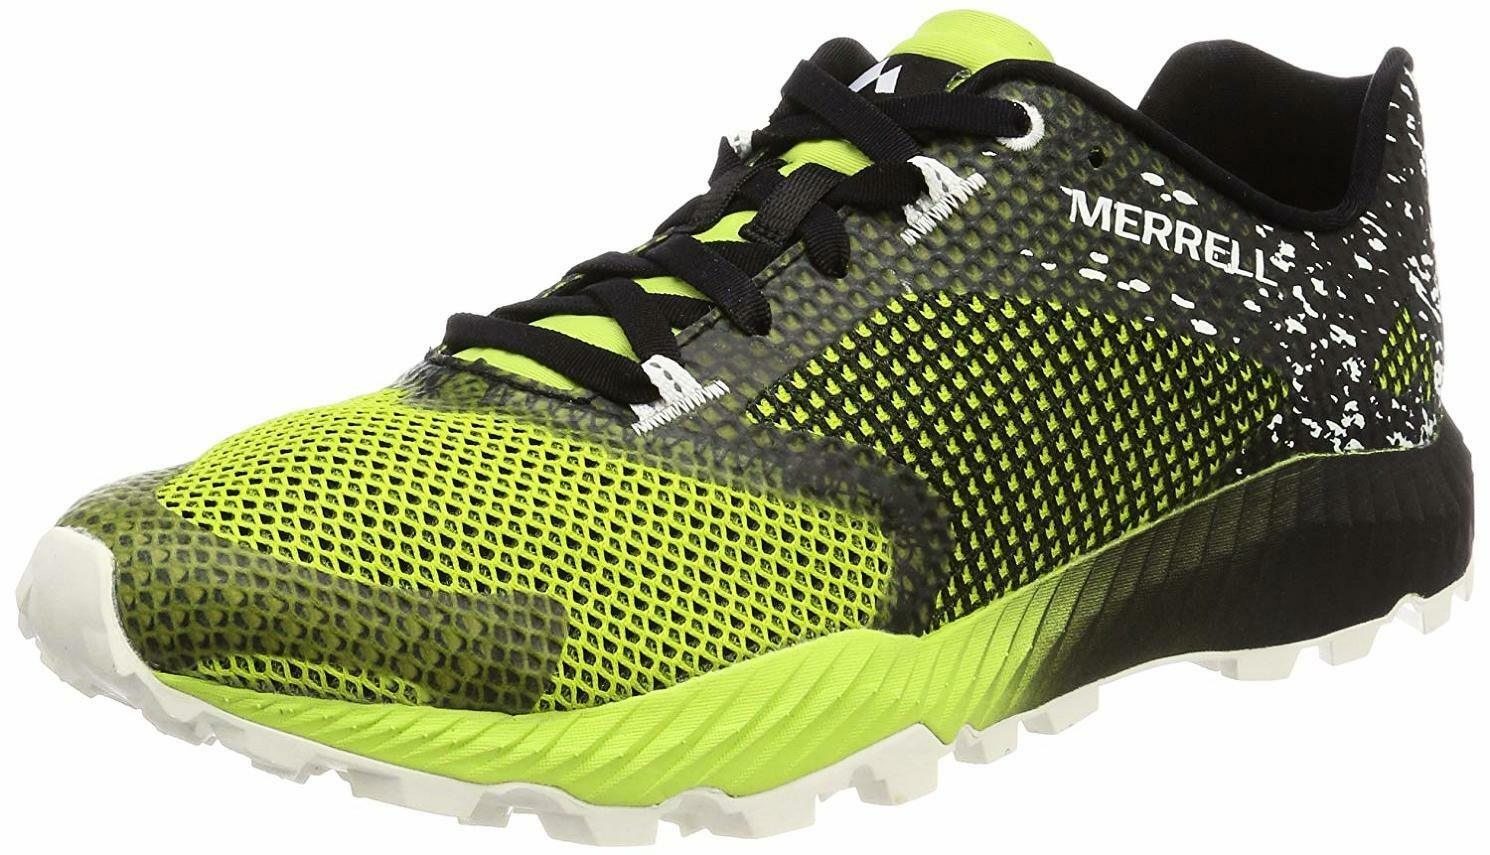 5bba7c0857fcb Merrell Men s Out Crush 2 Sneaker - SZ color All Choose nzxkvk1726 ...